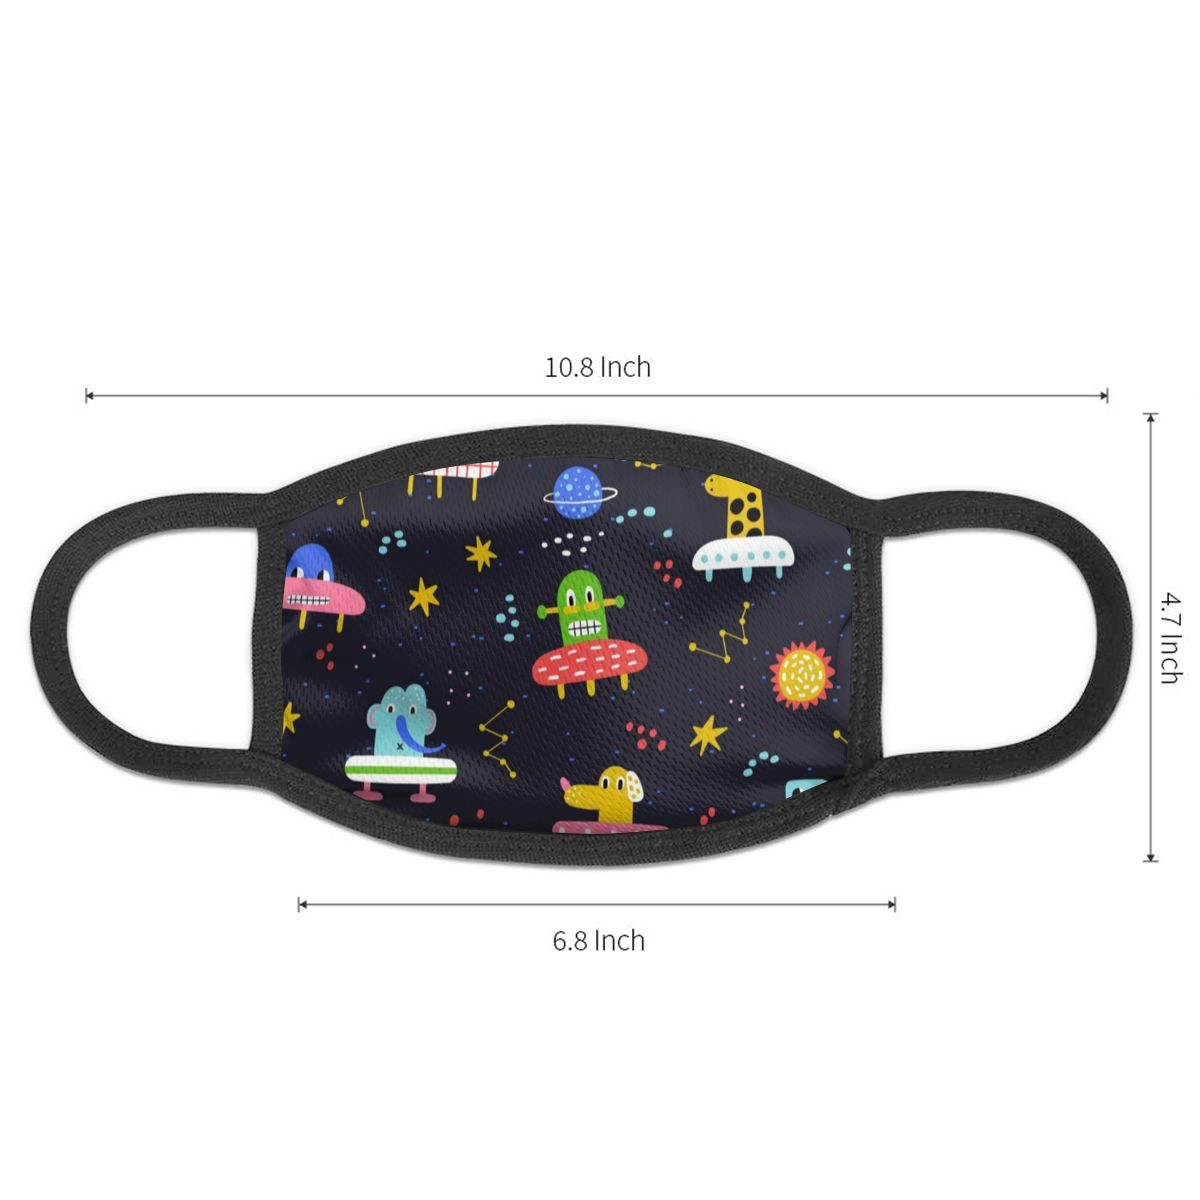 NOISYDESIGNS Unisex Cartoon Graffiti Print Kawaii Face Half Mouth Mask Fashion Cute Breathable Warm Windproof Anti-Dust Masks